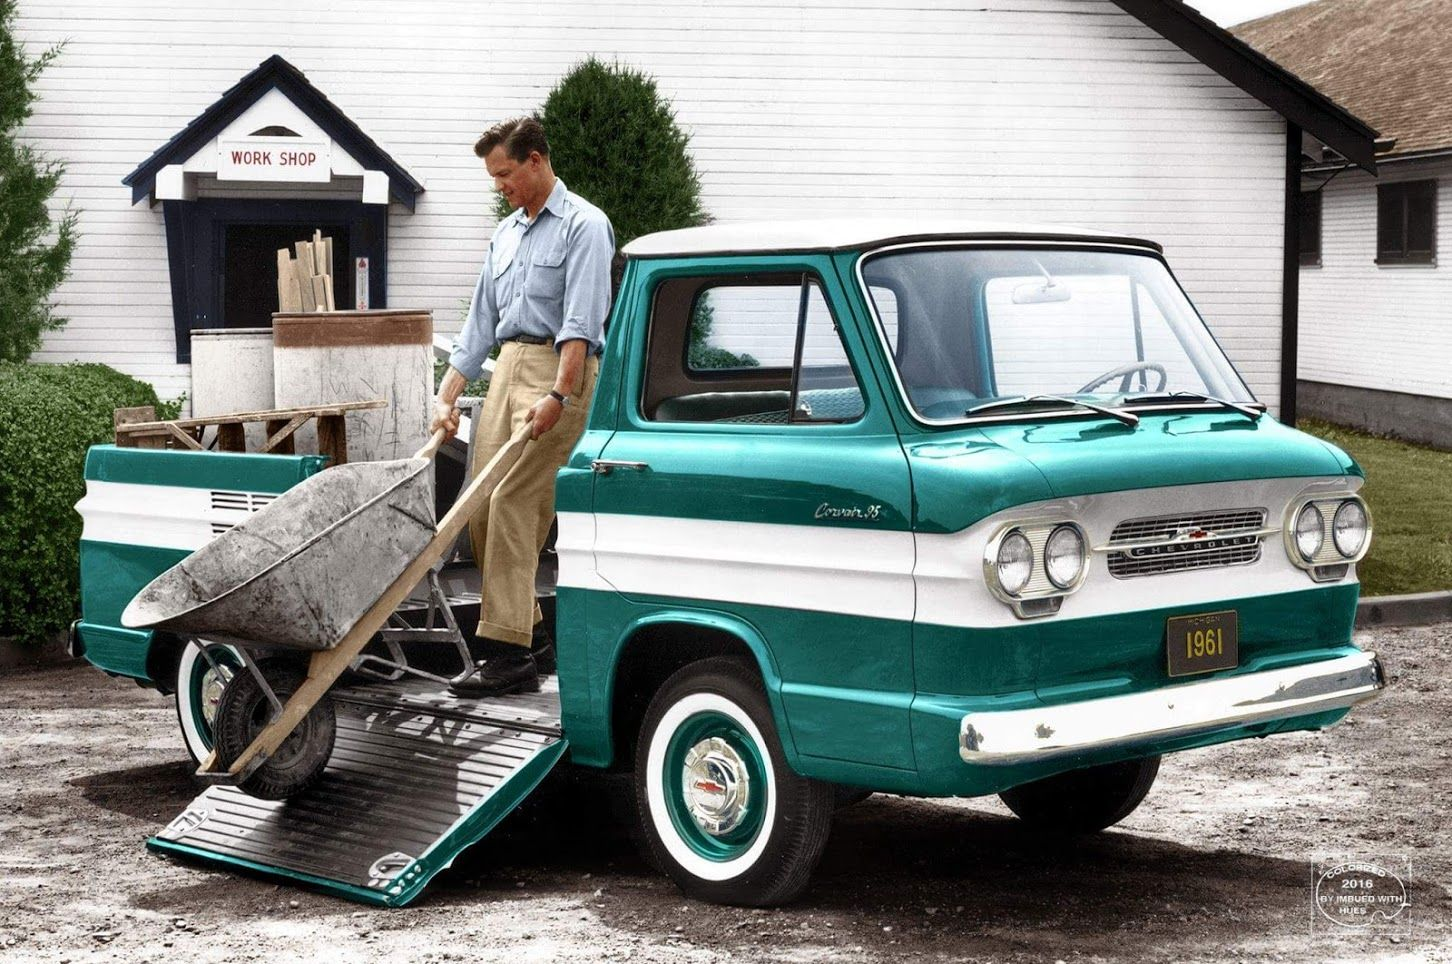 1961 Chevrolet Corvair 95 Pickup Truck Side Ramp Image Colorized By Imbued By Hues Chevrolet Corvair Chevrolet Trucks Pickup Trucks